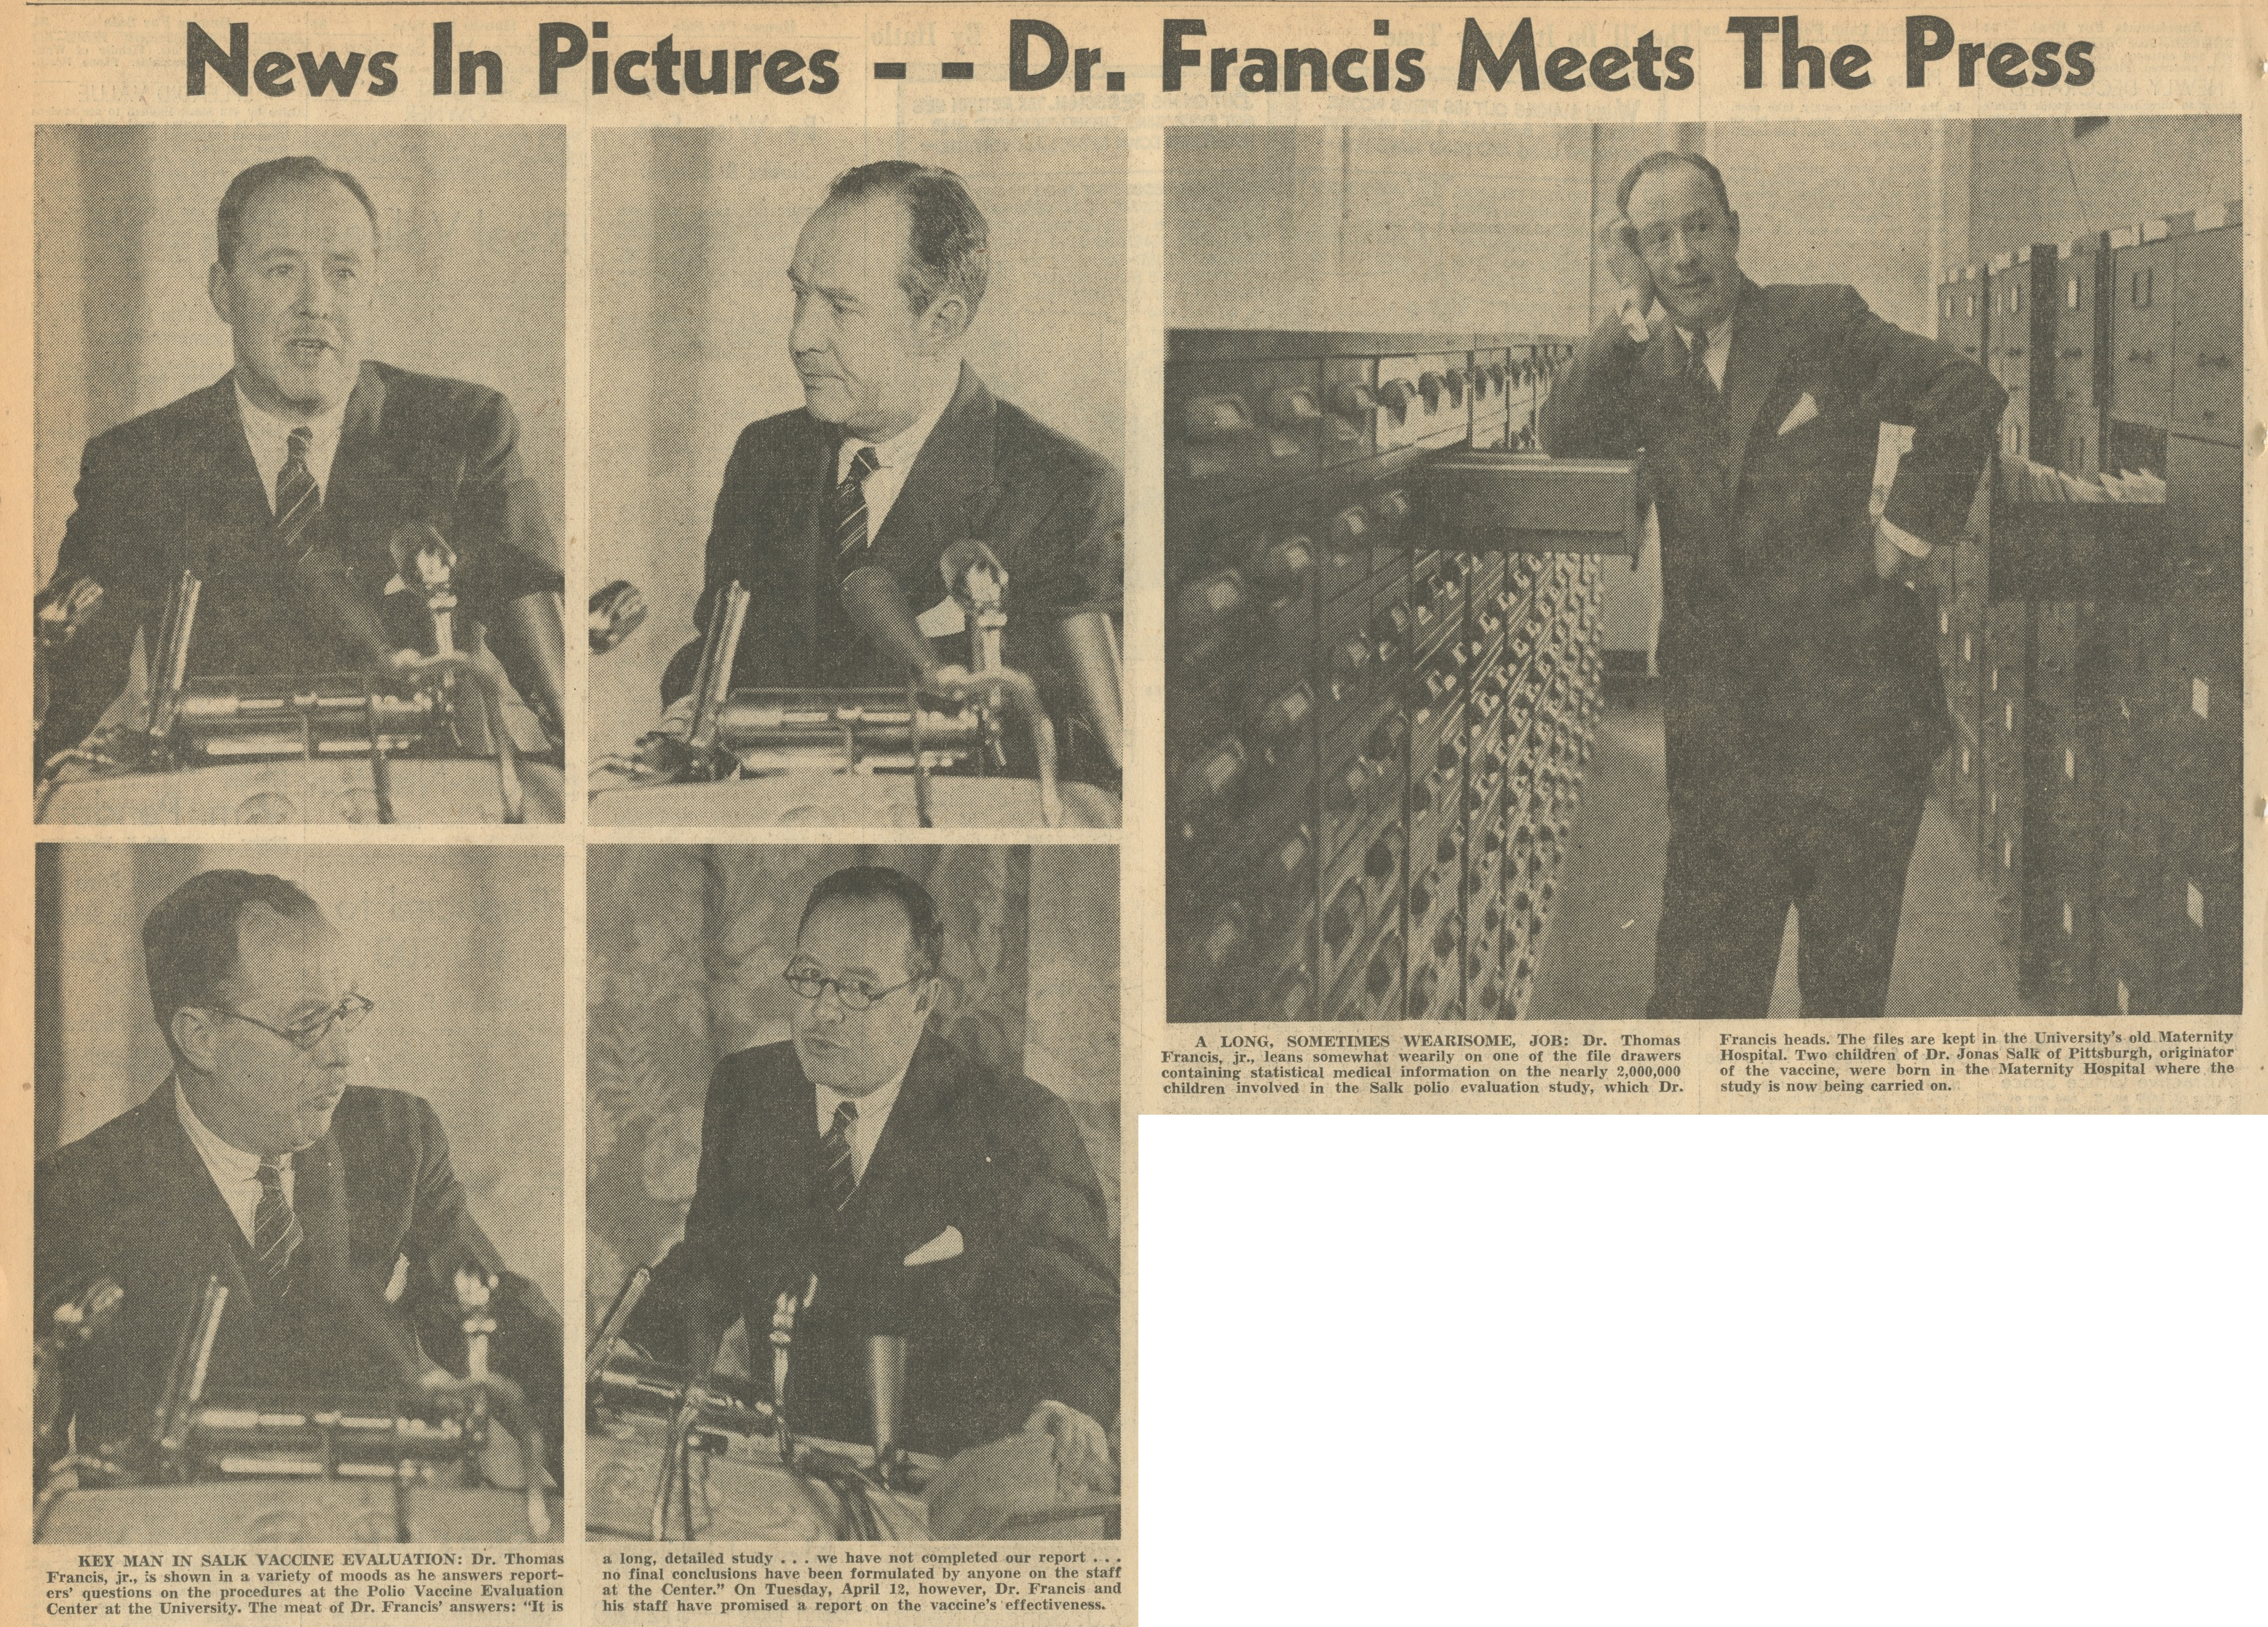 News In Pictures -- Dr. Francis Meets The Press image